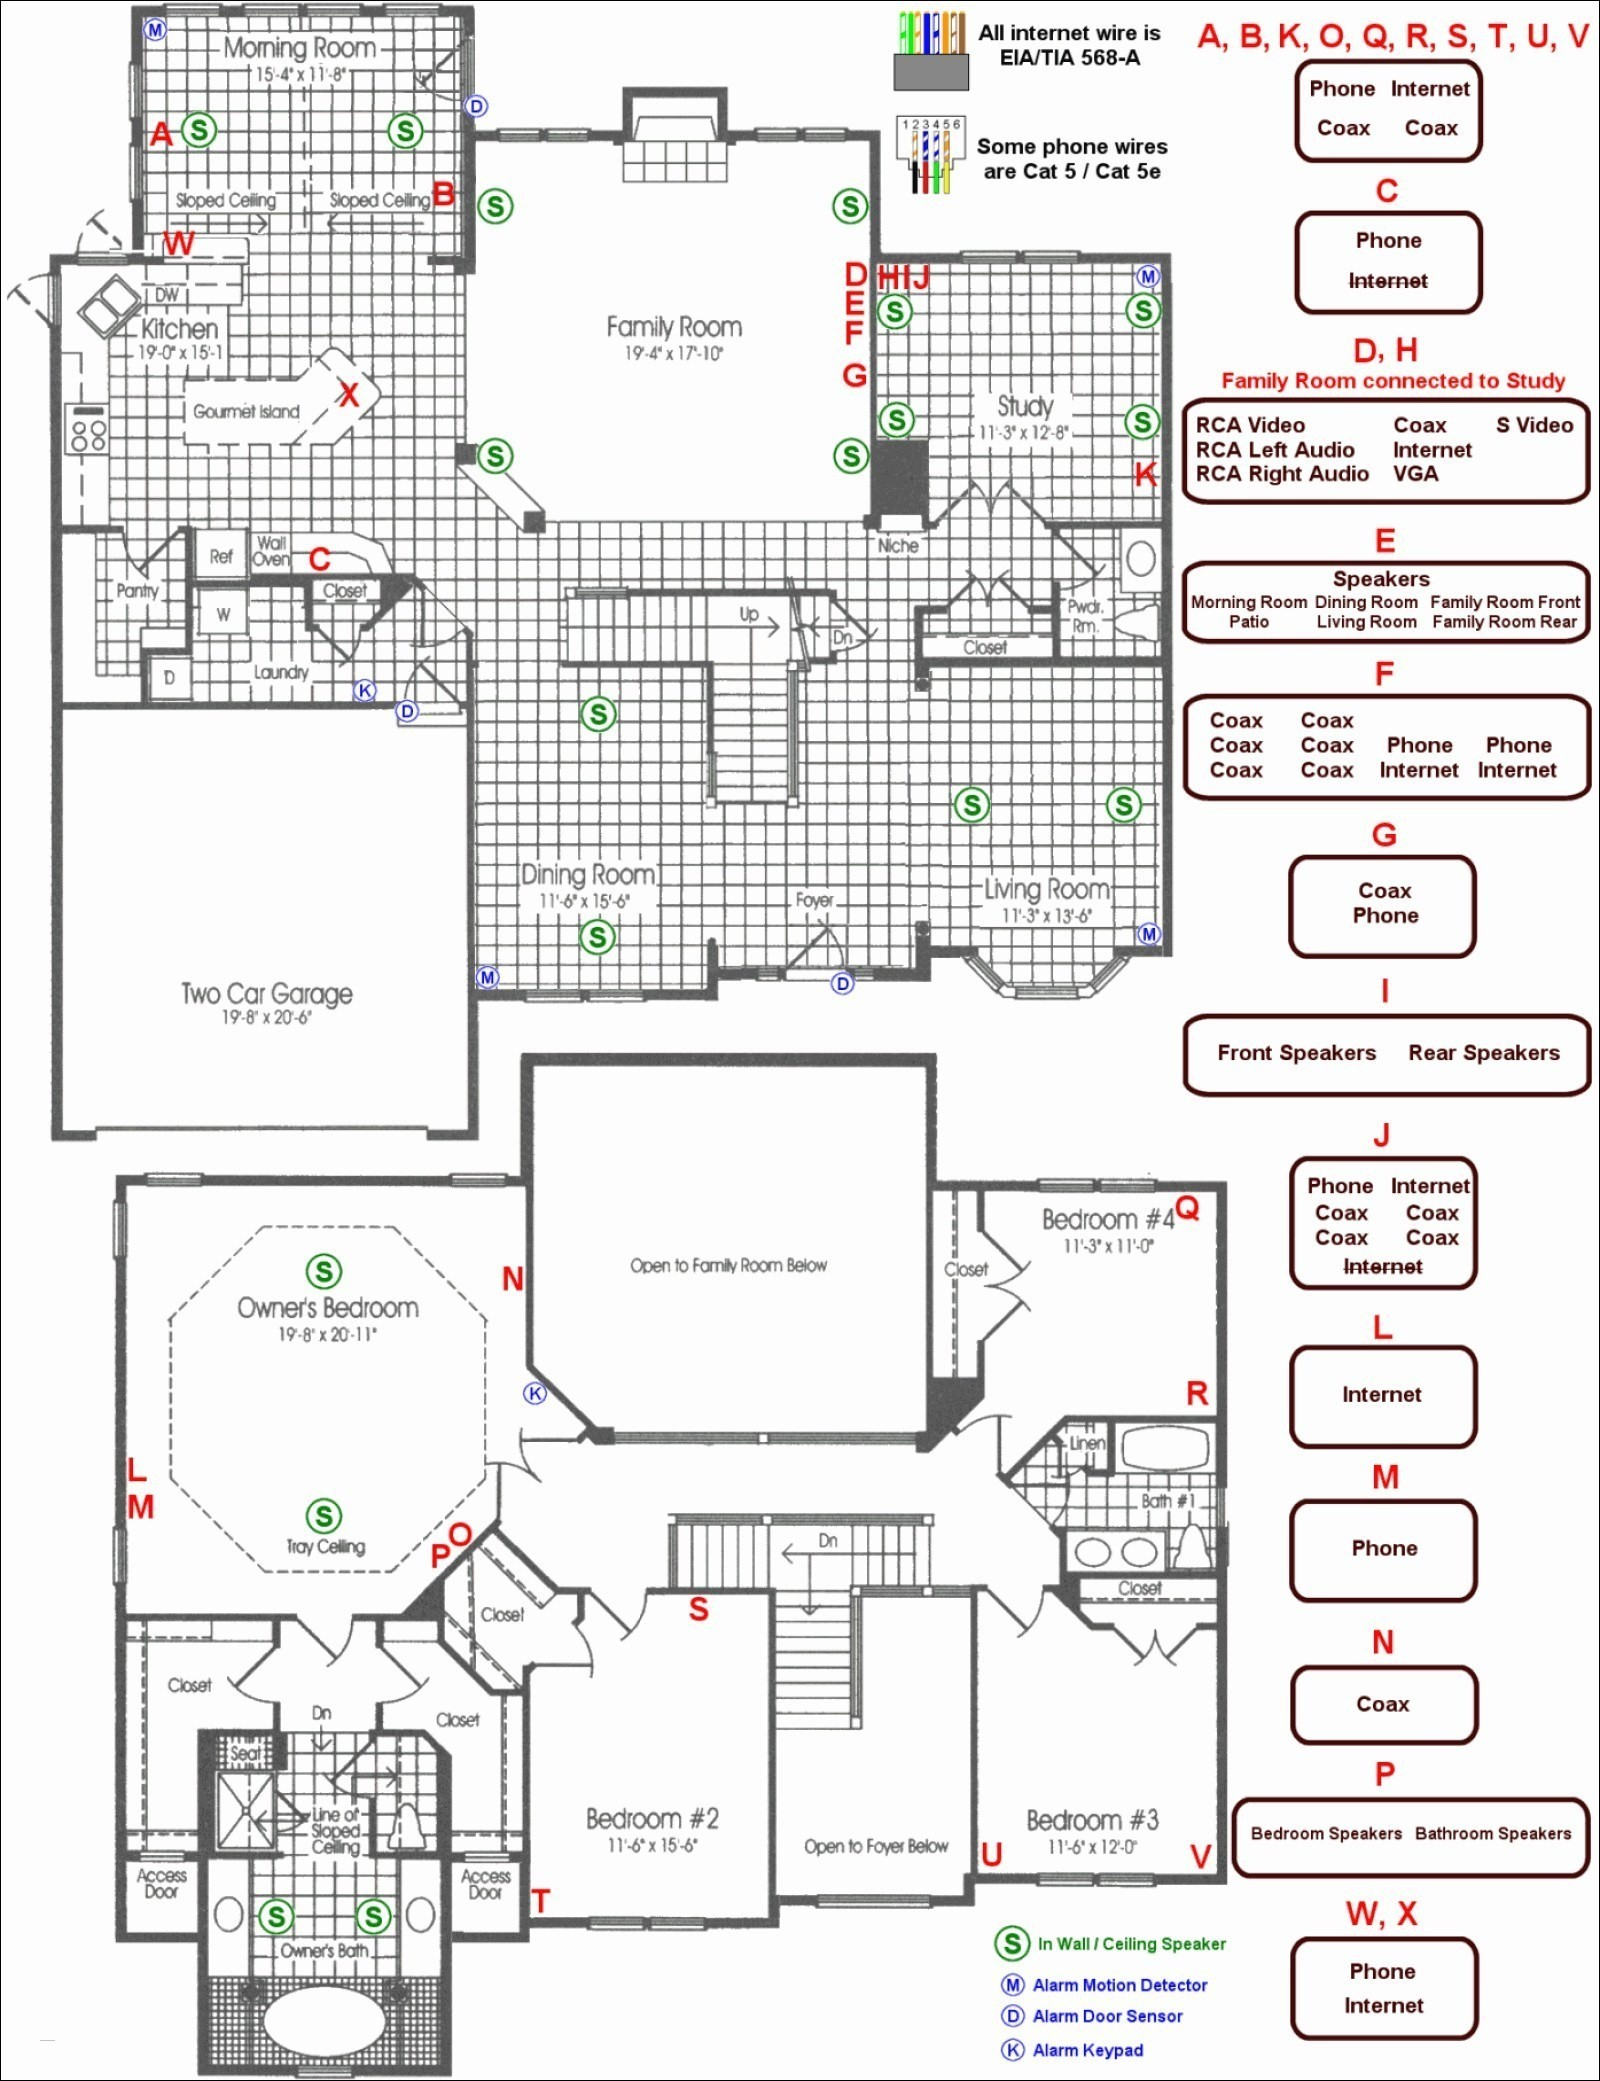 Wiring Diagram for Series Save Basic House Wiring Diagram Collection